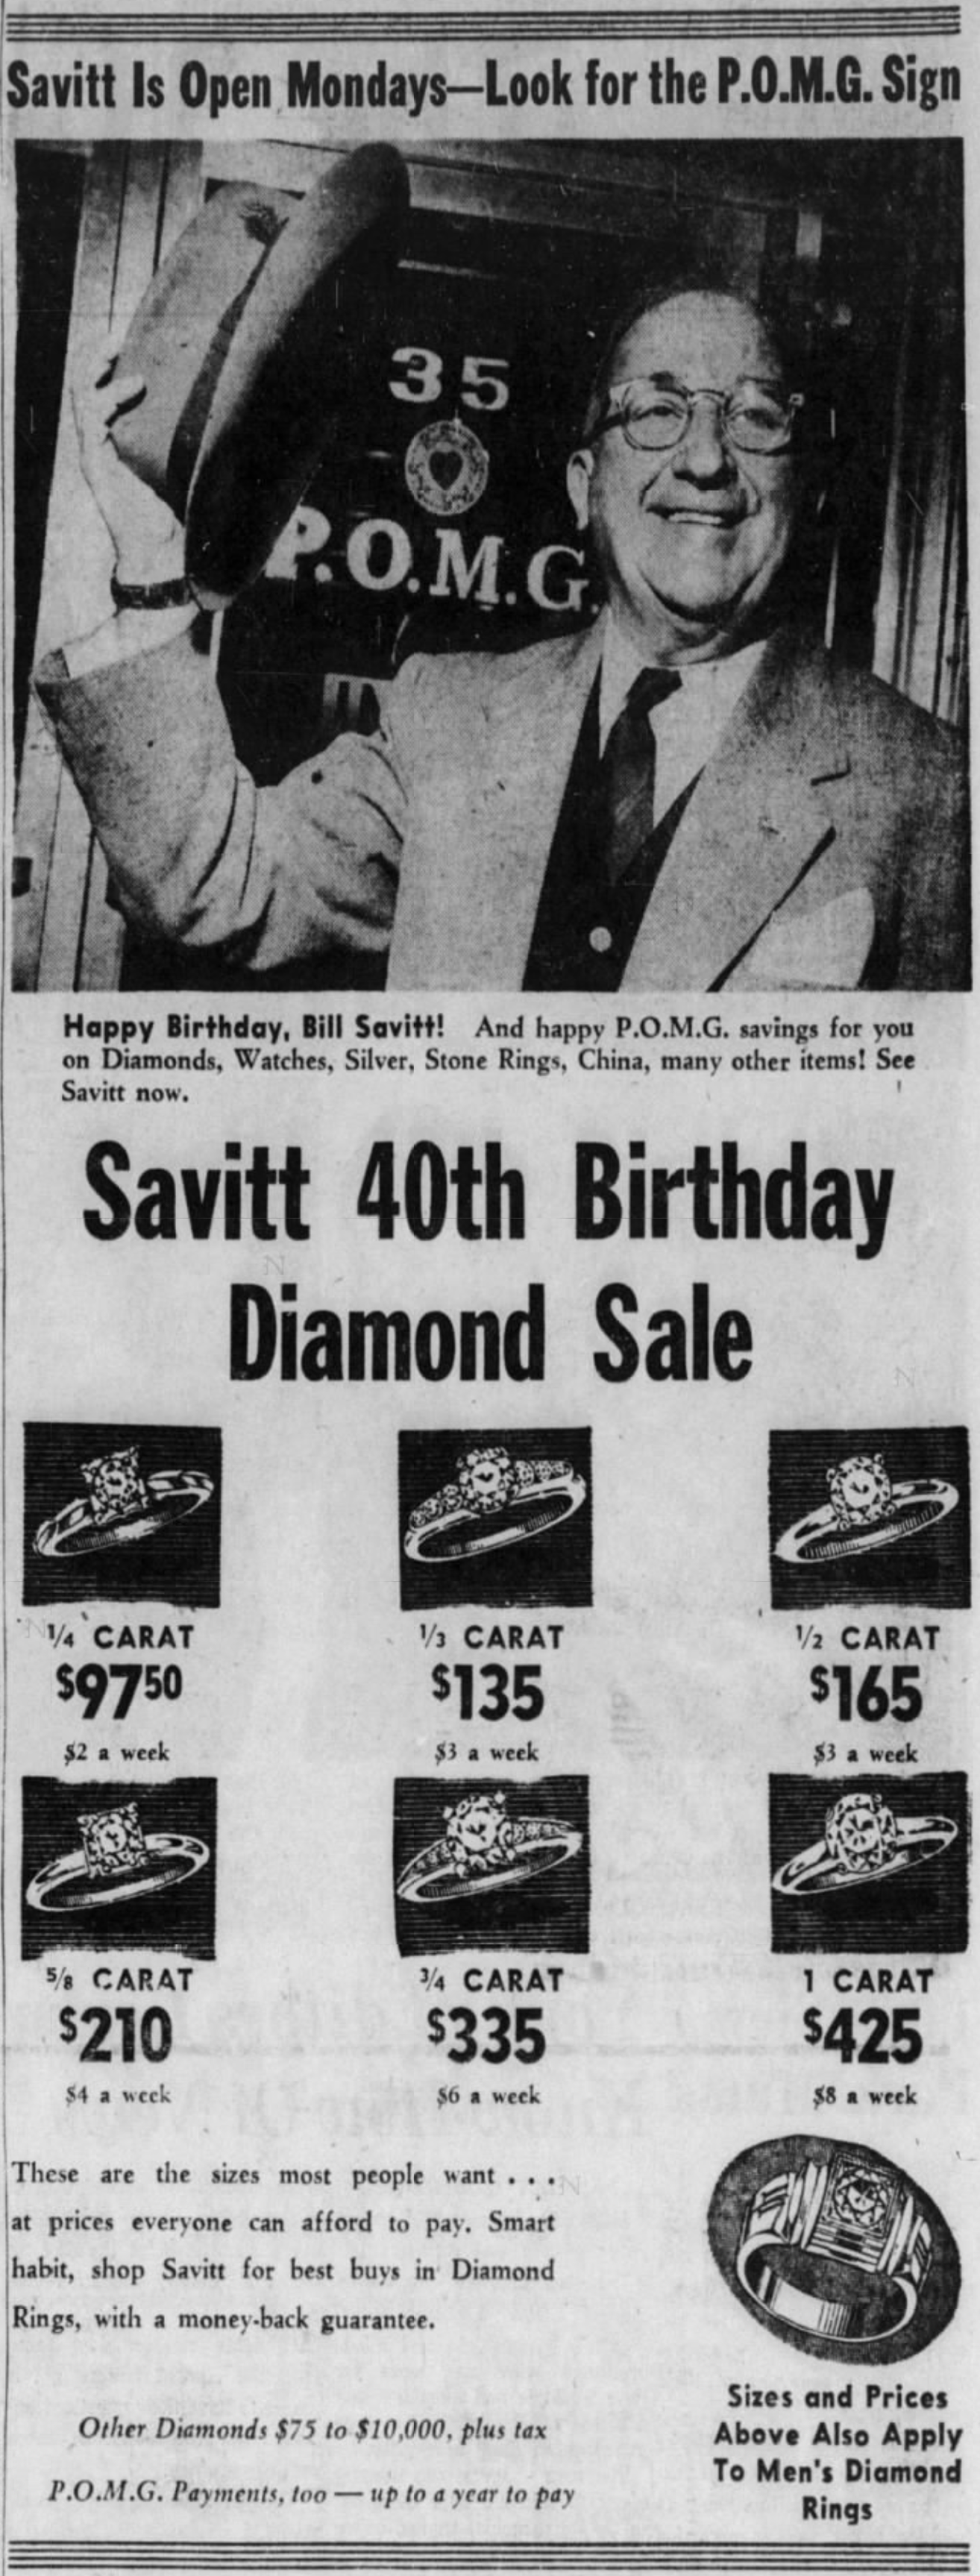 Bill Savitt, Savitt Jewelers, 1959.